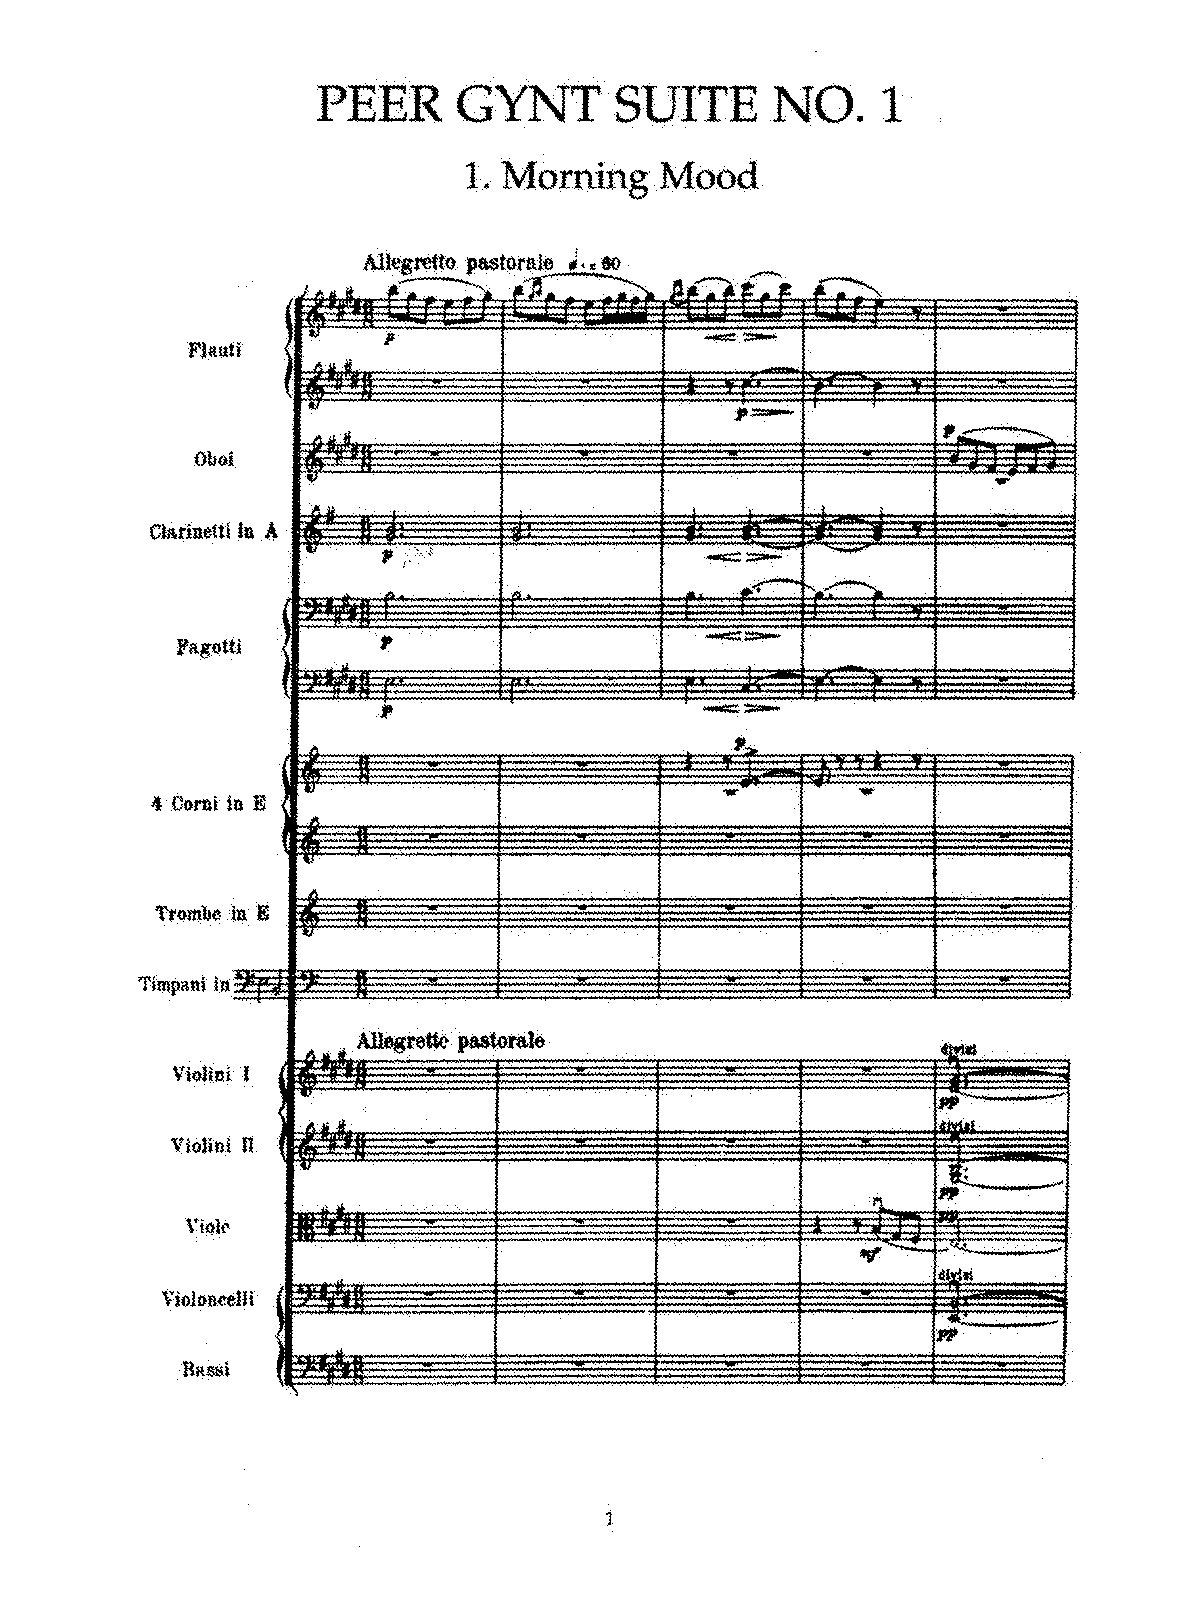 Grieg - Peer Gynt Suite No.1-1, Op.46-1 (Full Score).pdf